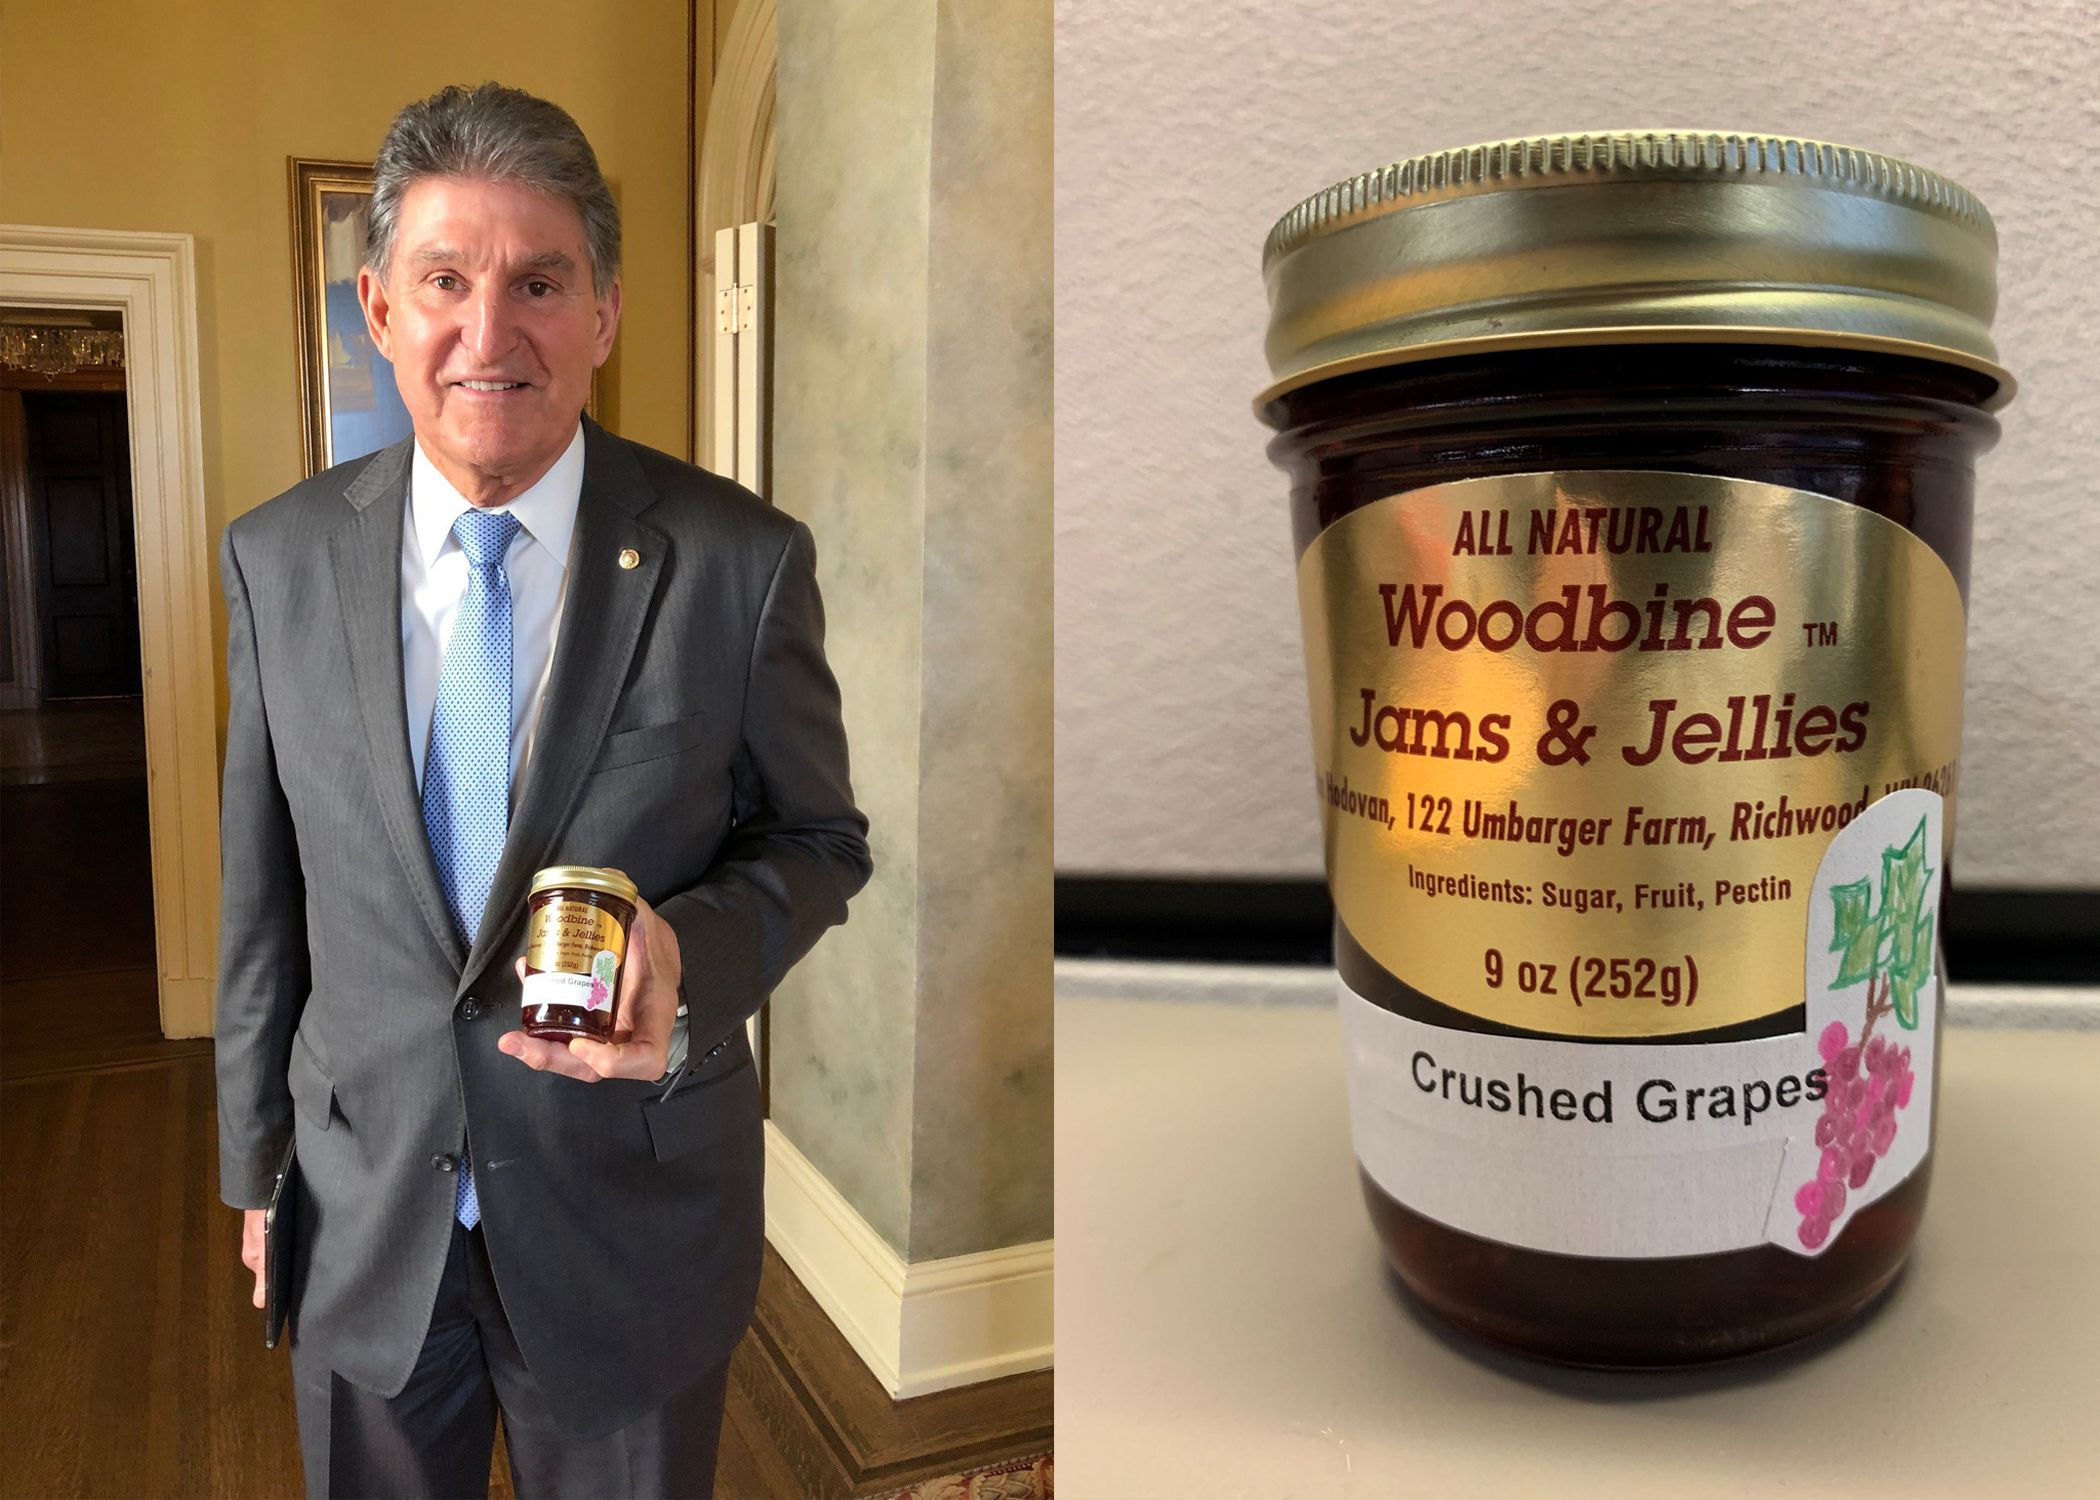 Democrat Joe Manchin Gives Mitch McConnell a Jar of Jam For